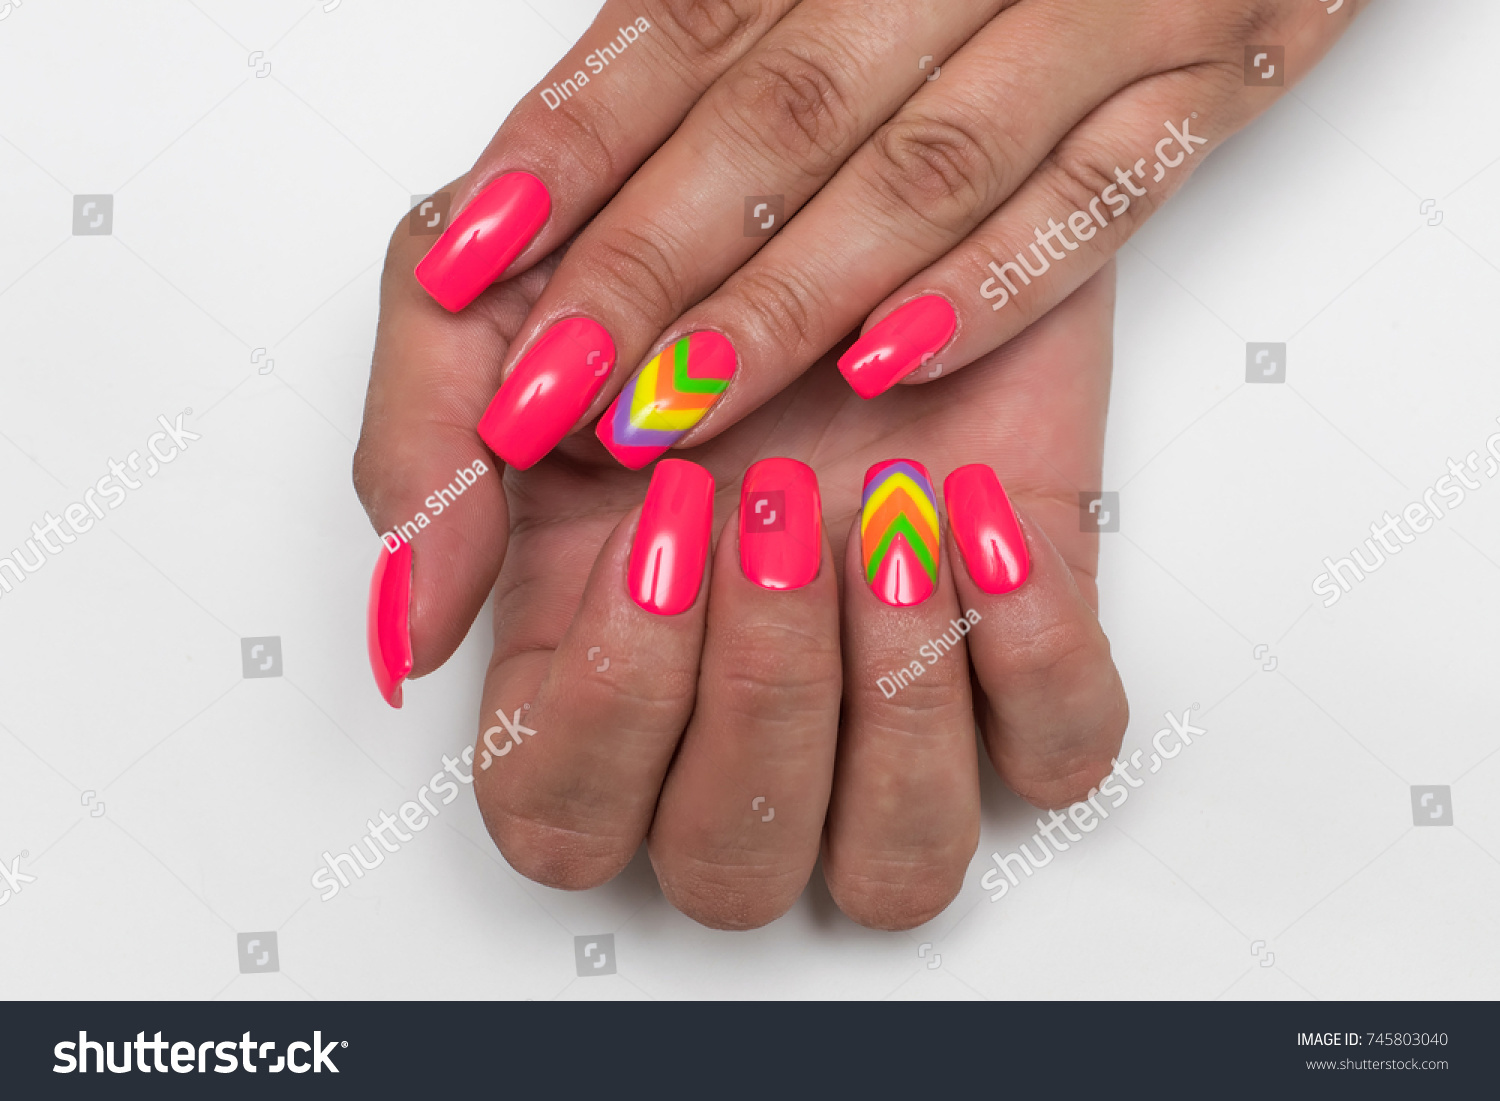 Pink Manicure On Long Square Nails Stock Photo (Royalty Free ...